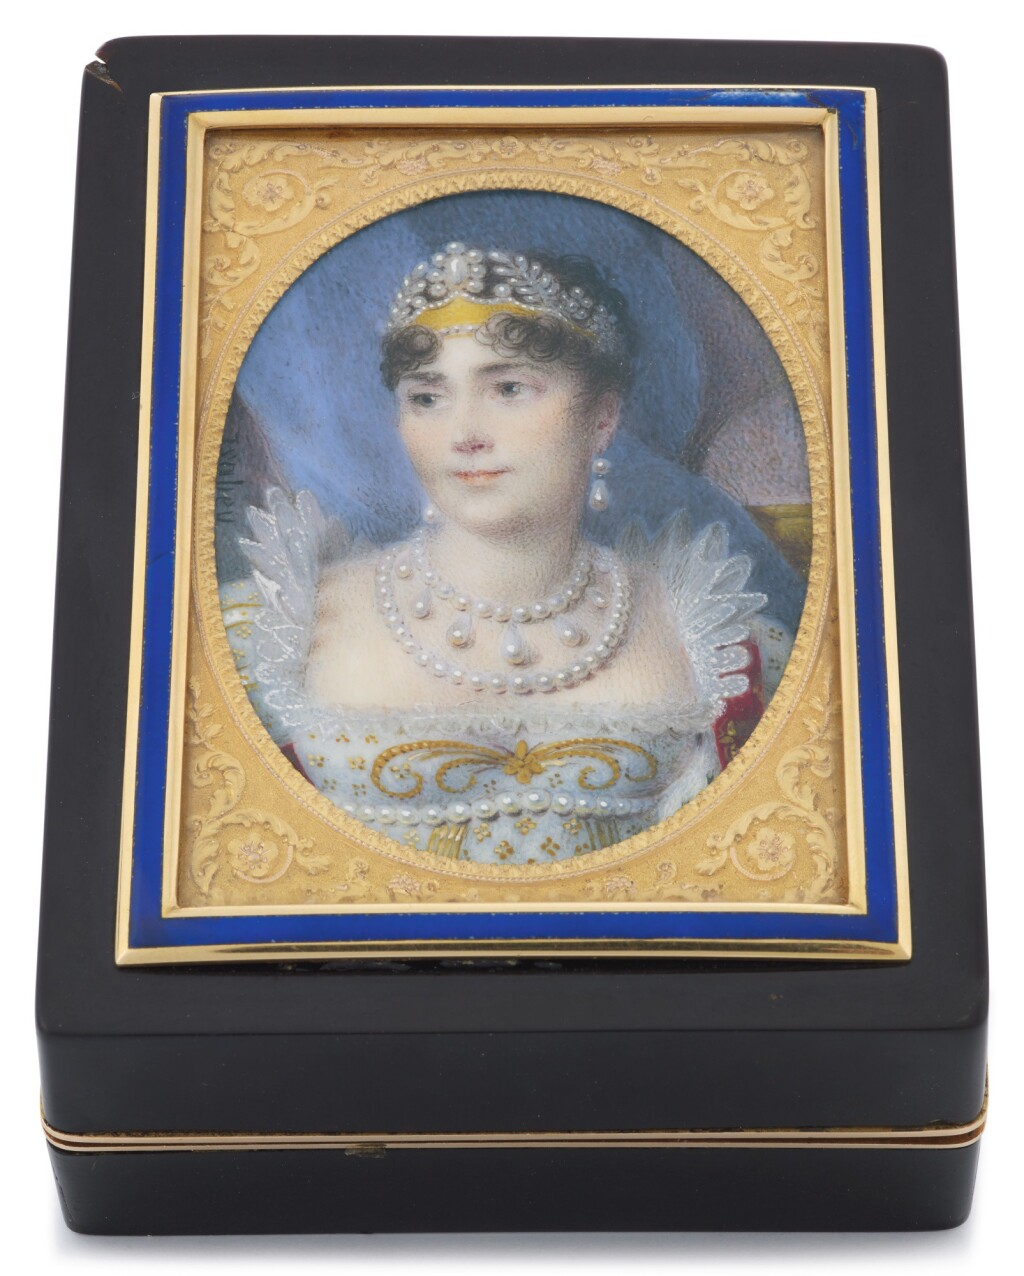 A GOLD-MOUNTED TORTOISESHELL SNUFF BOX WITH MINIATURE ON IVORY, JEAN-LOUIS-LEFERRE, PARIS, 1798-1809